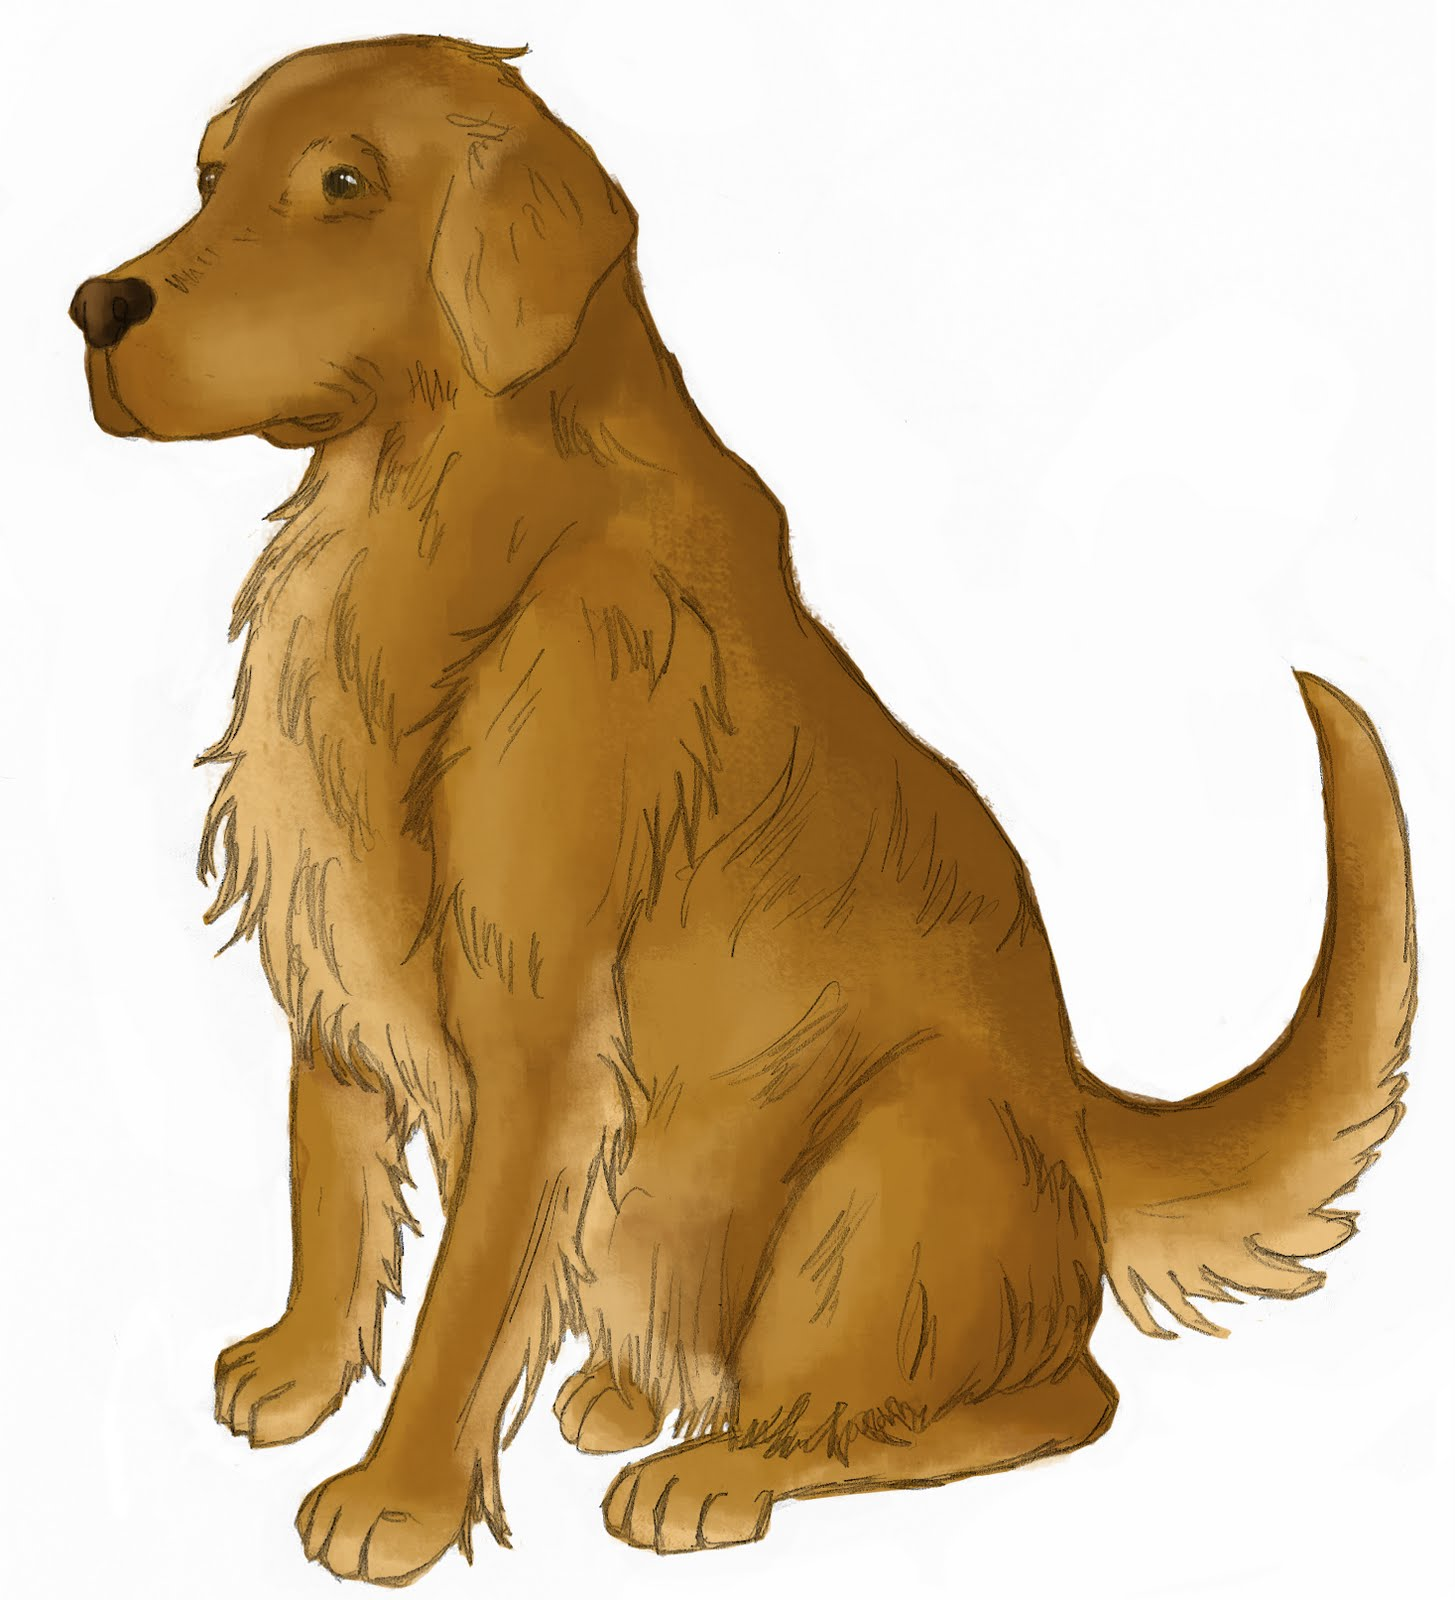 kristen acampora illustration golden retriever